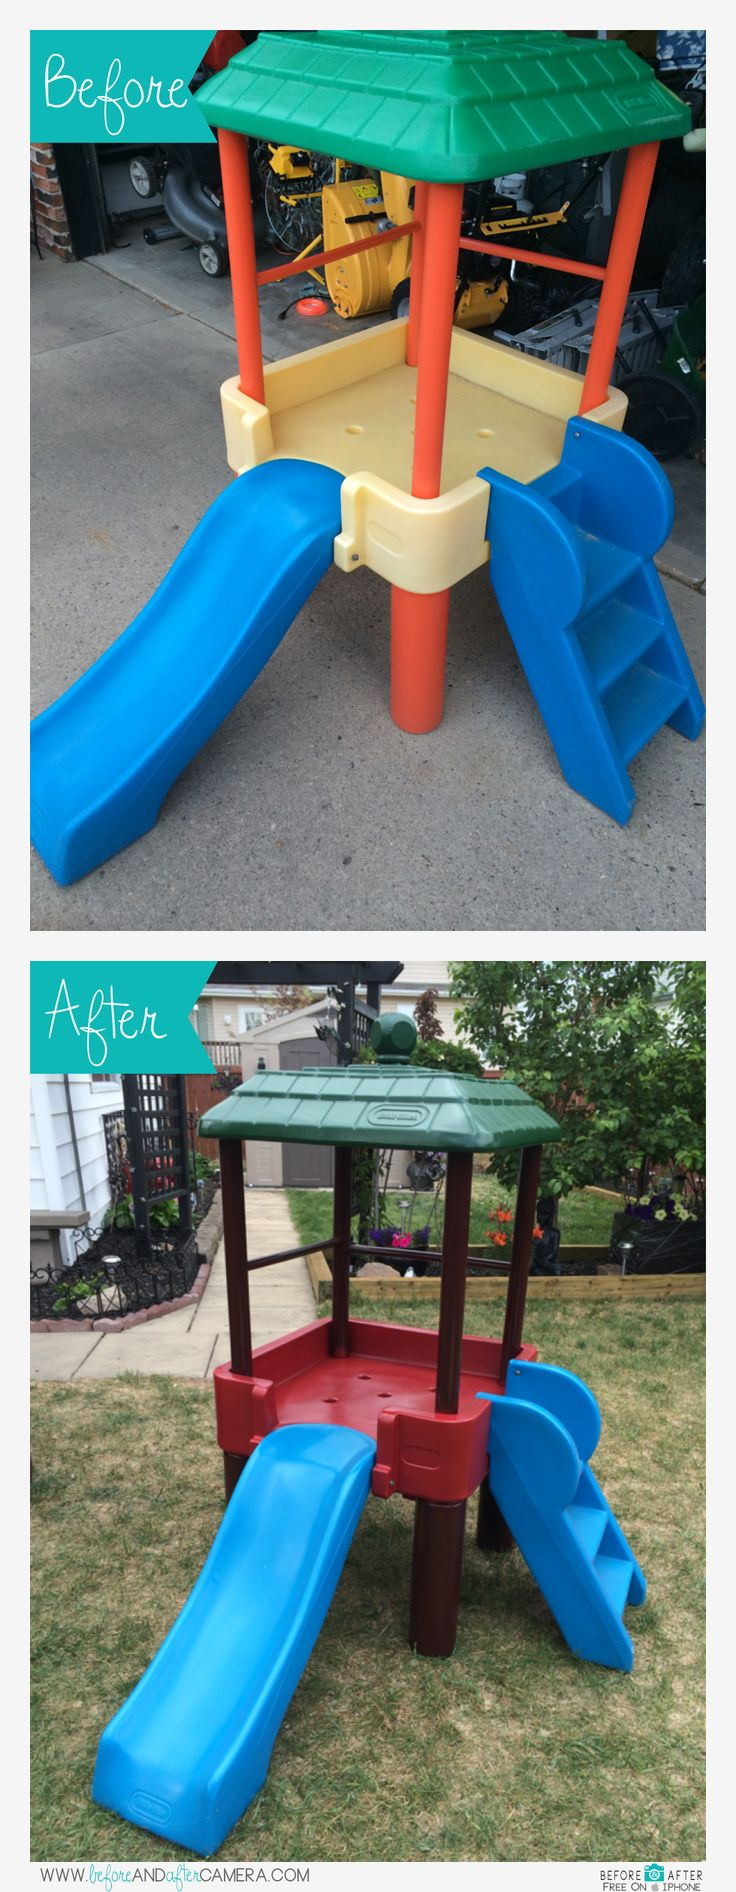 Little Tikes Orange Slides : Best images about classic must haves on pinterest